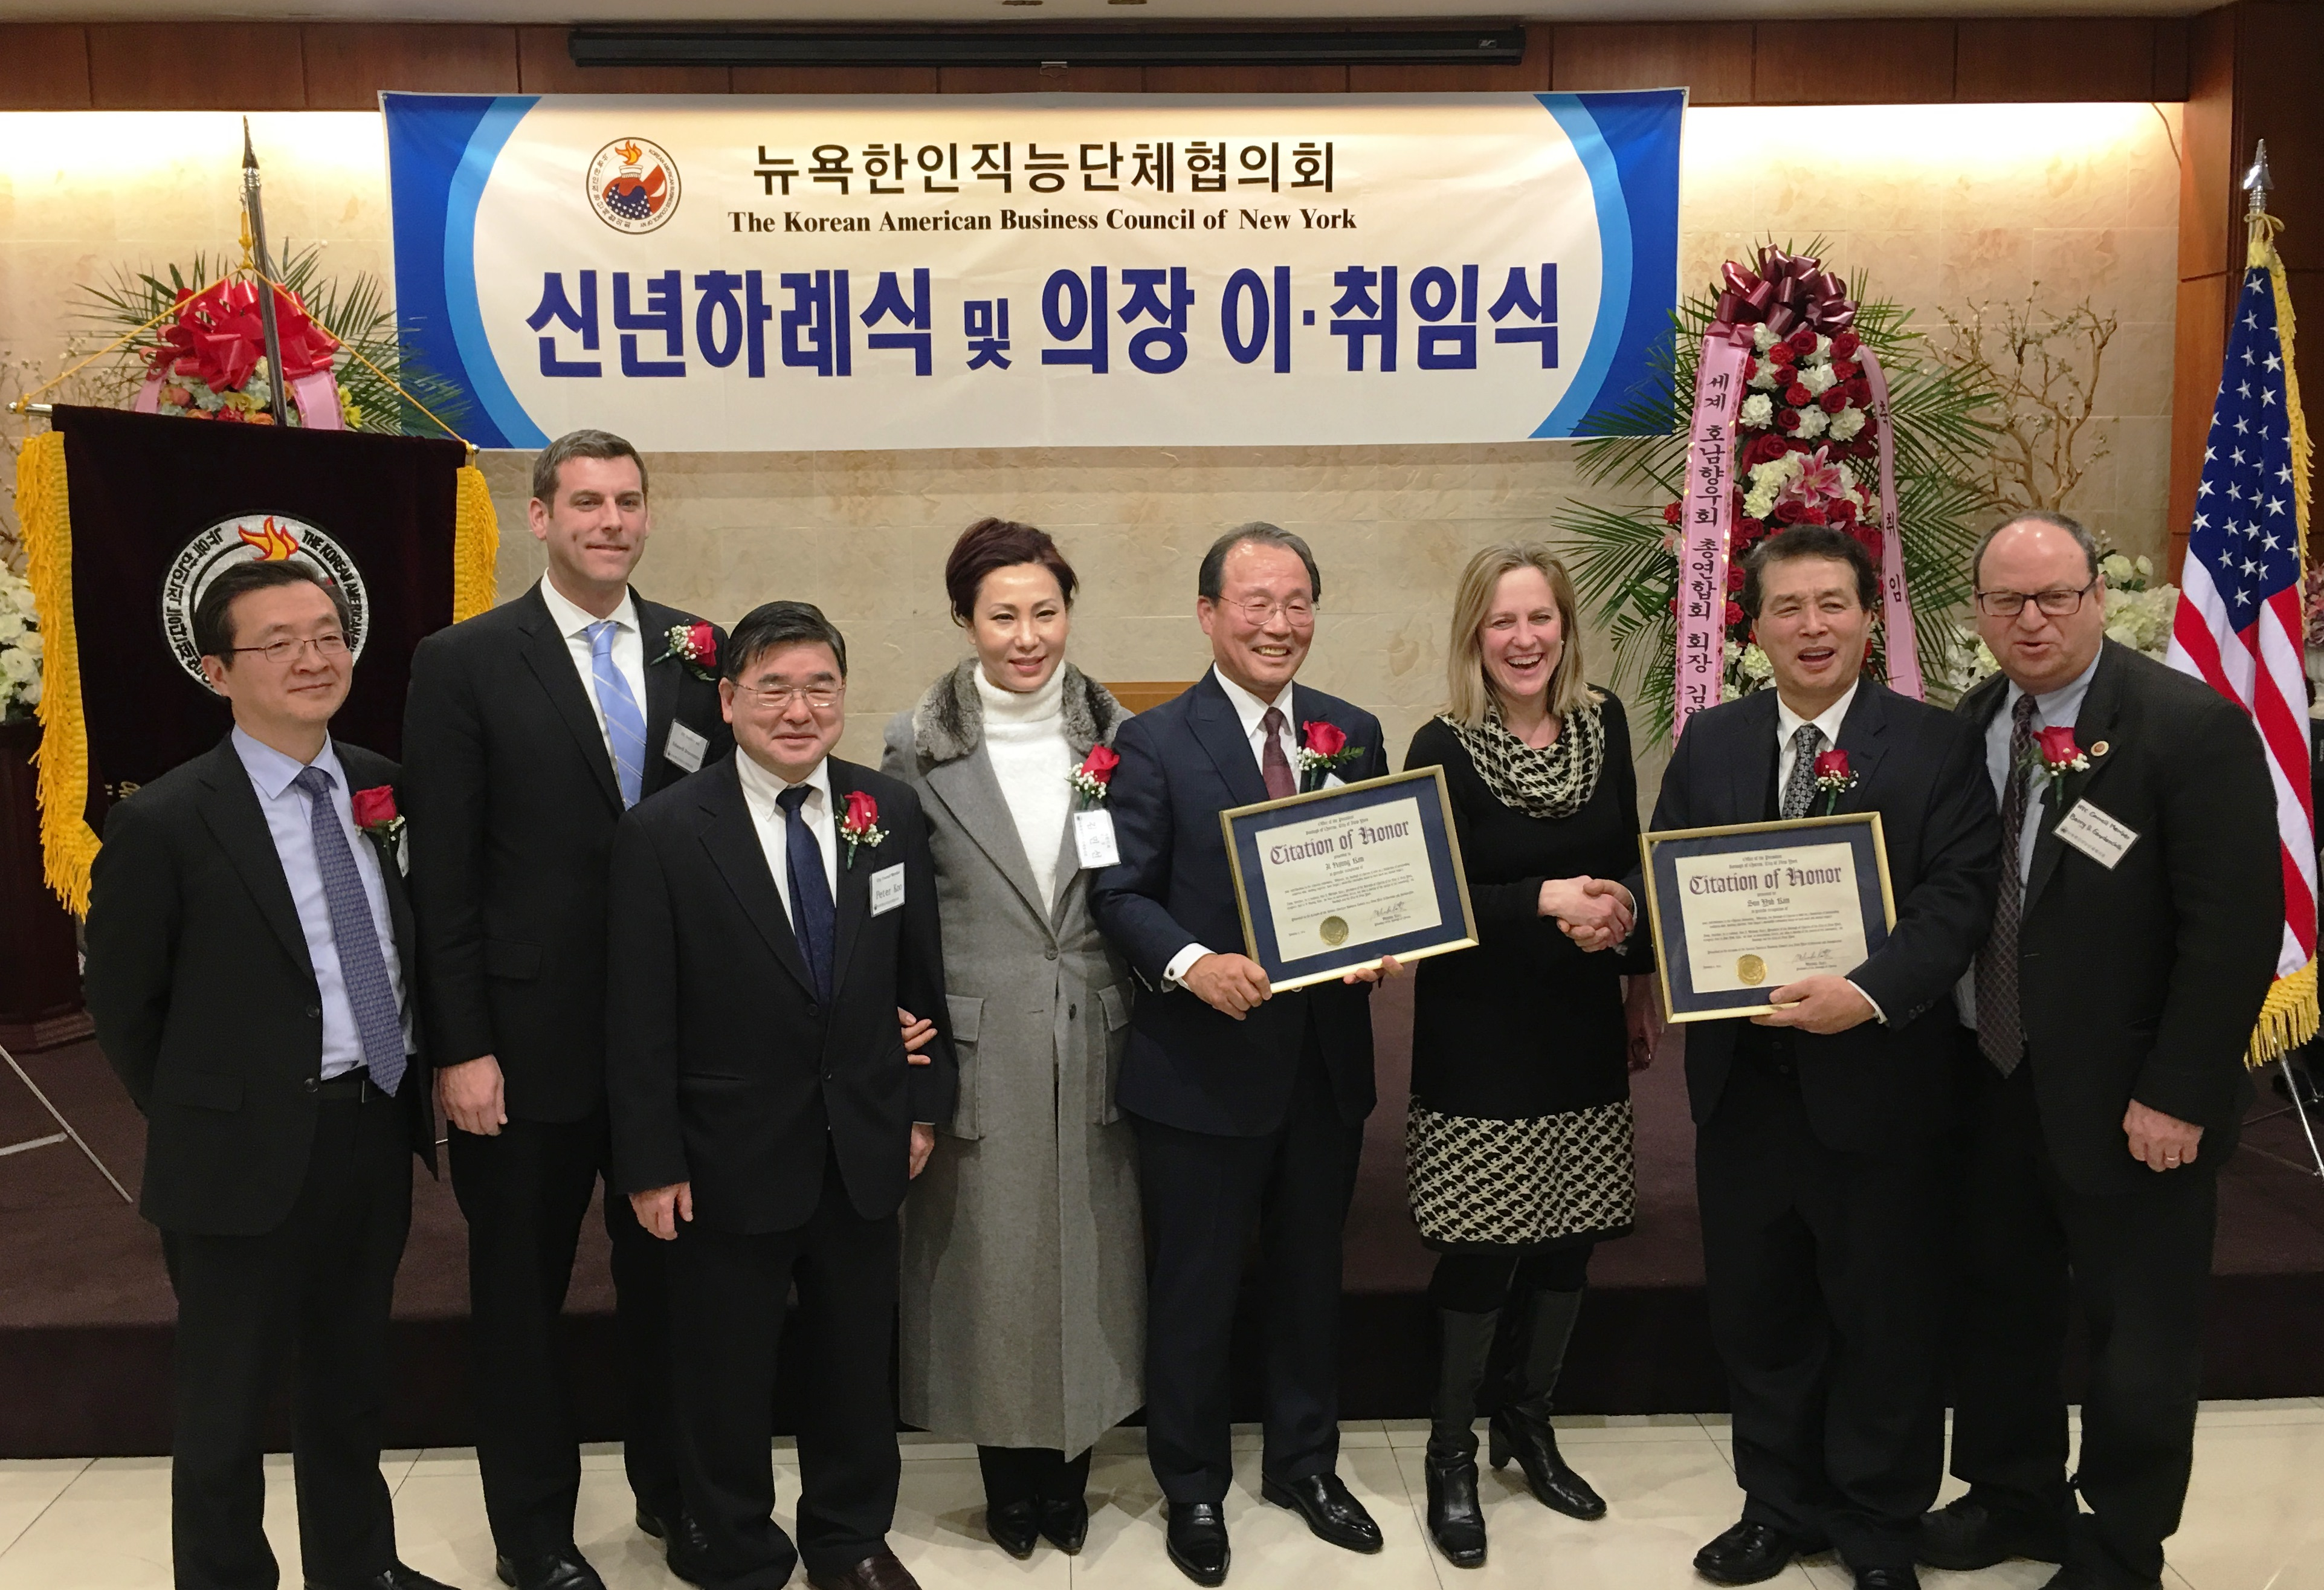 On January 8, 2019, Assemblyman Braunstein attended the Korean American Business Council of New York's 2019 New Year Celebration & Inauguration.